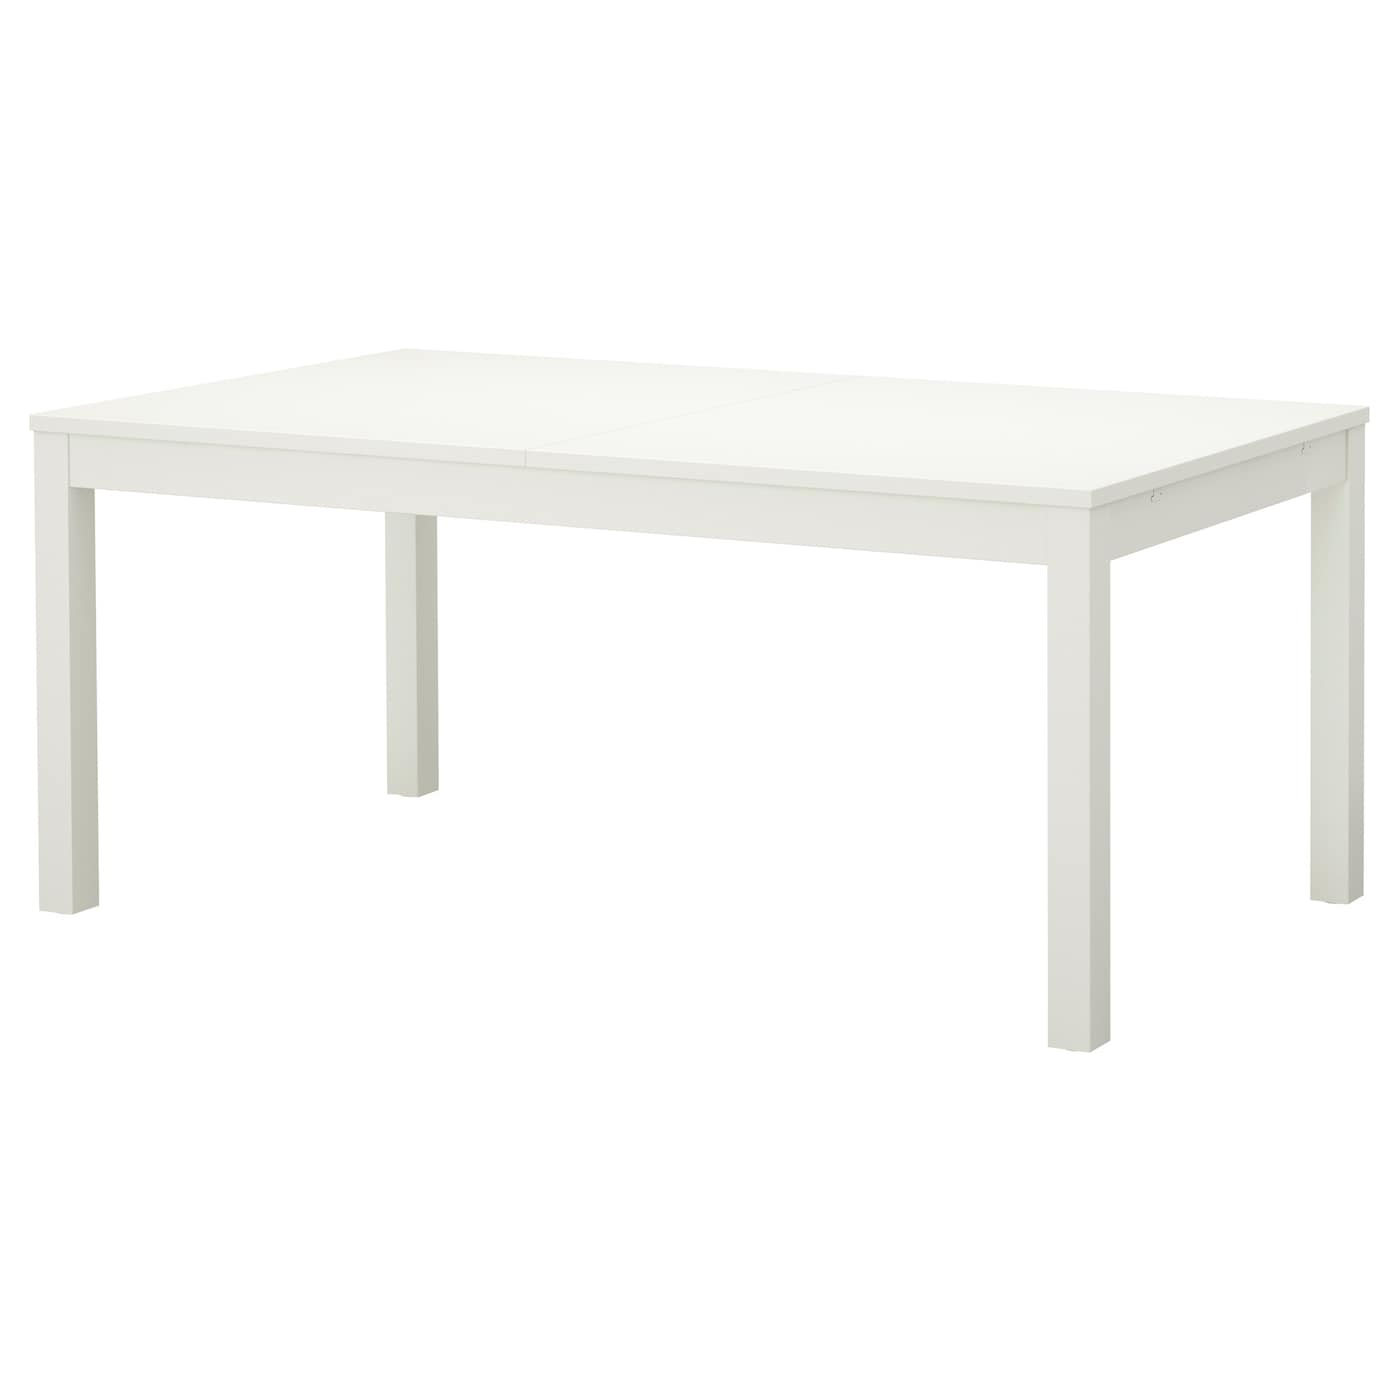 BJURSTA Extendable table White 175218260x95 cm IKEA